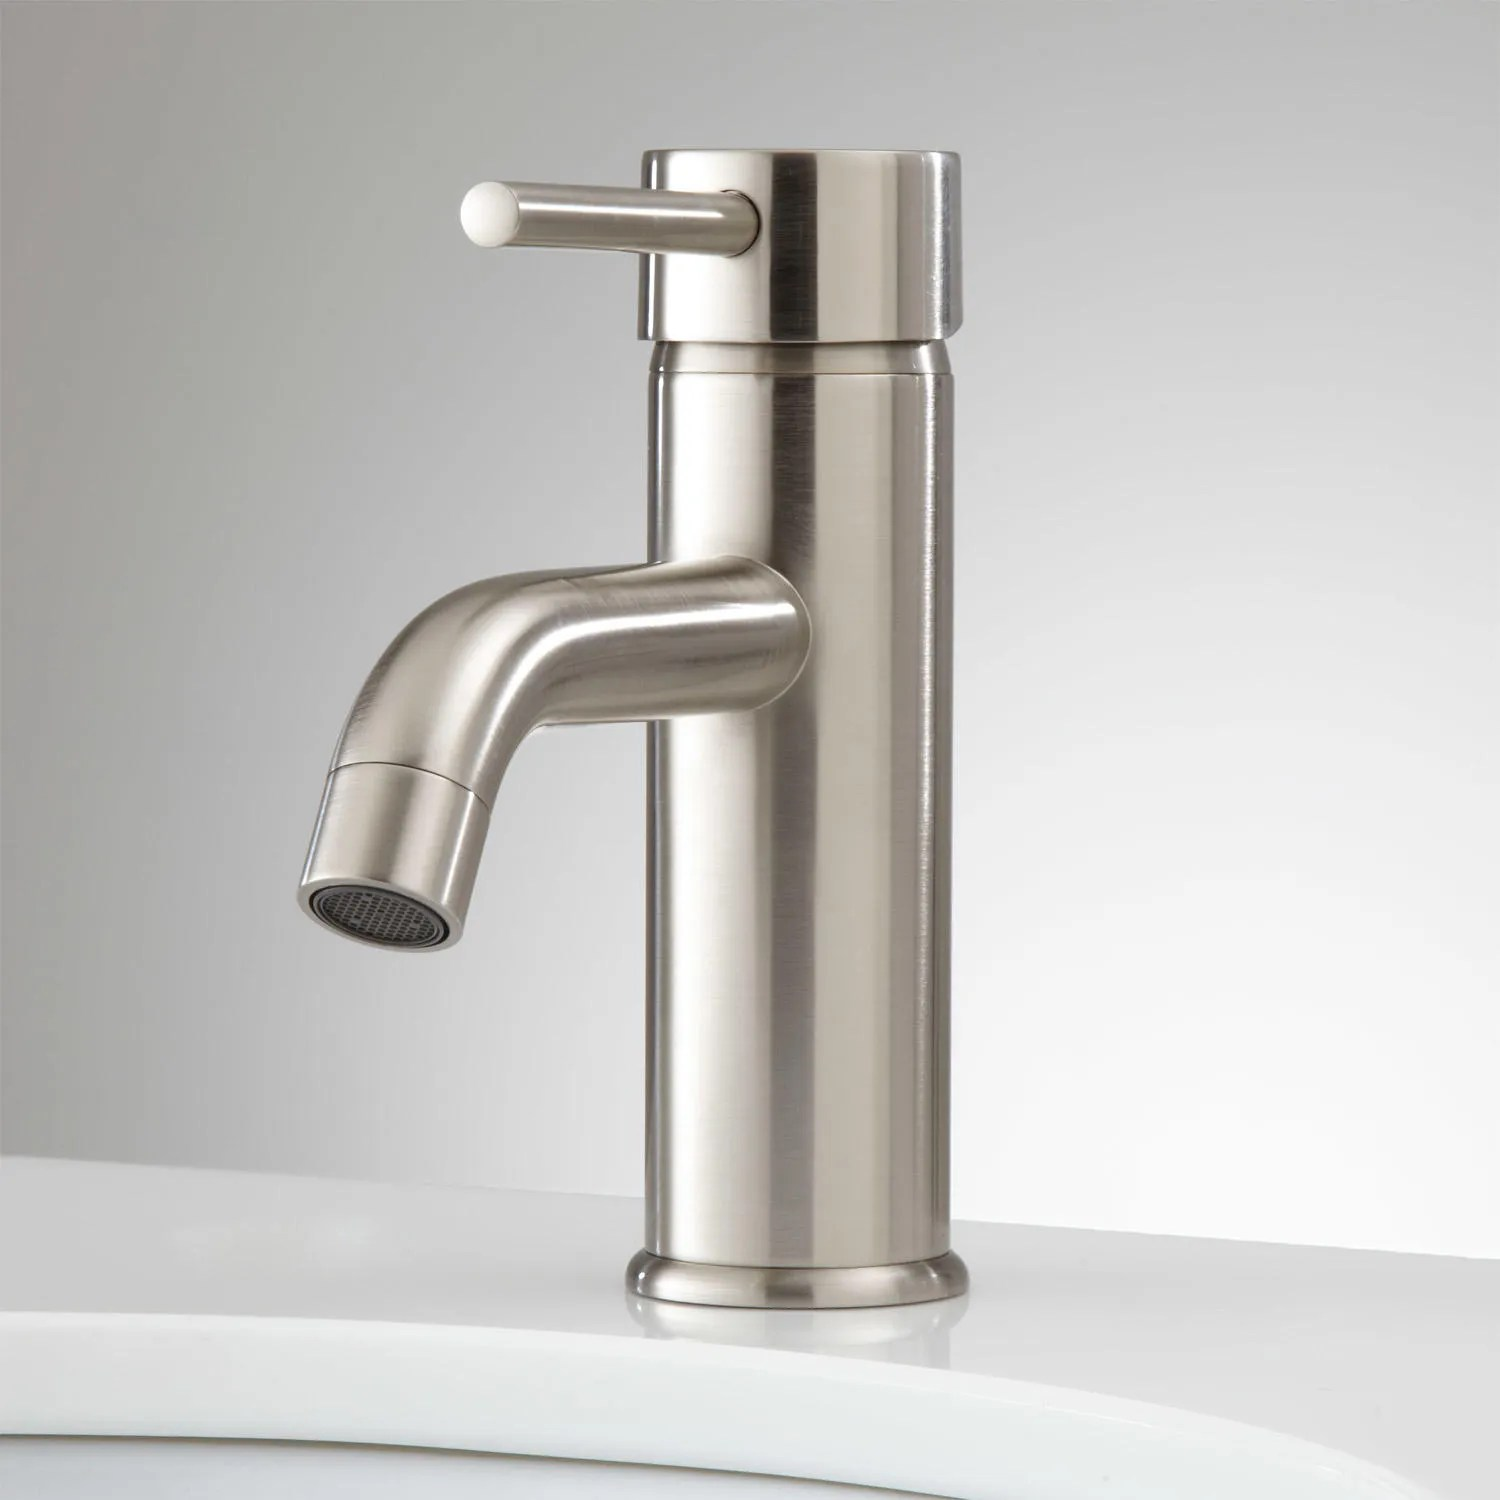 Ultra Single Hole Bathroom Faucet With Pop Up Drain